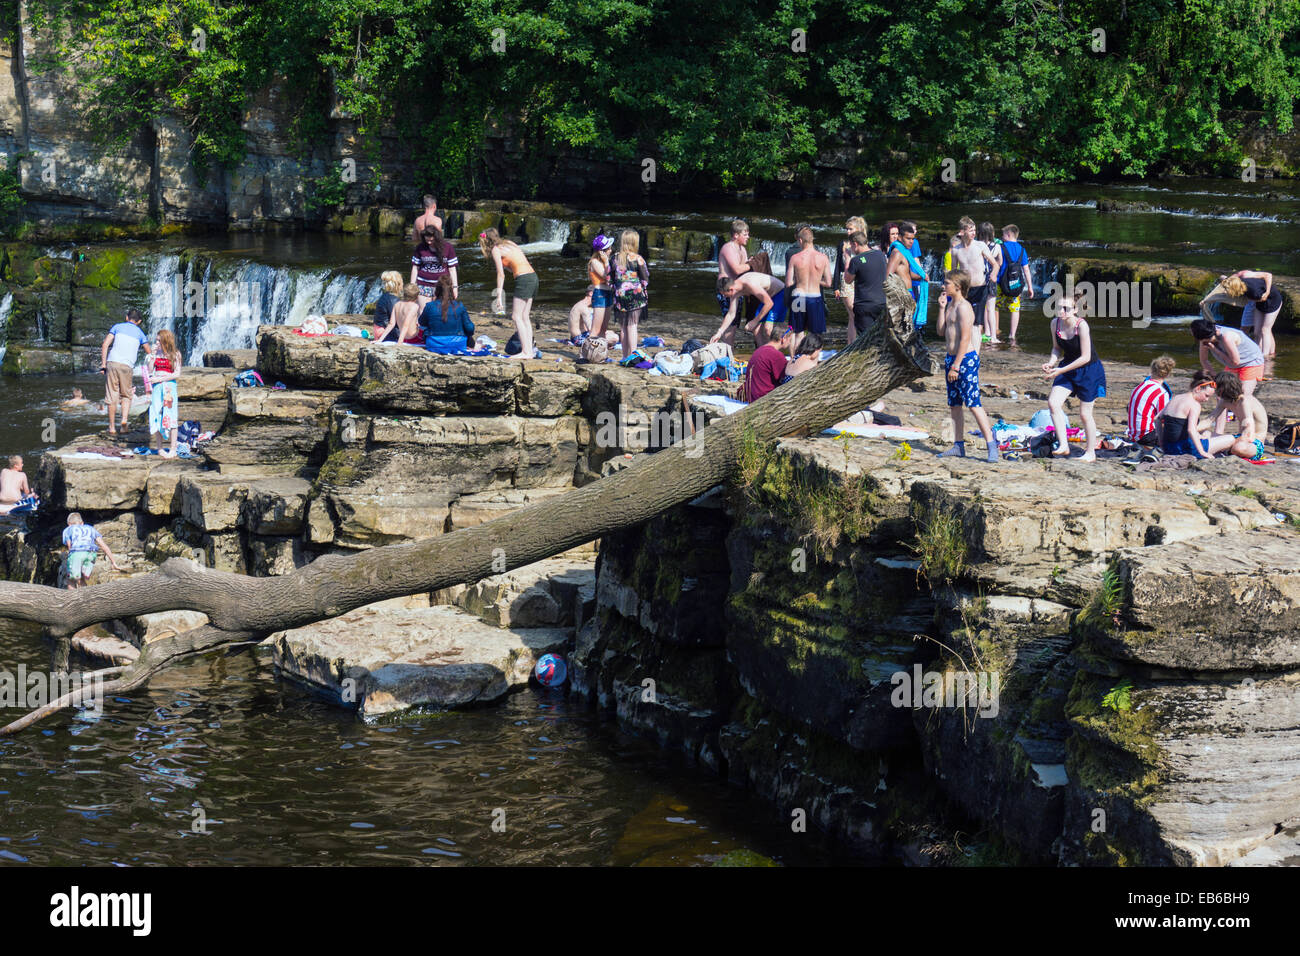 Crowds of young people playing in water, summer on the River Swale, Richmond, North Yorkshire, England Stock Photo